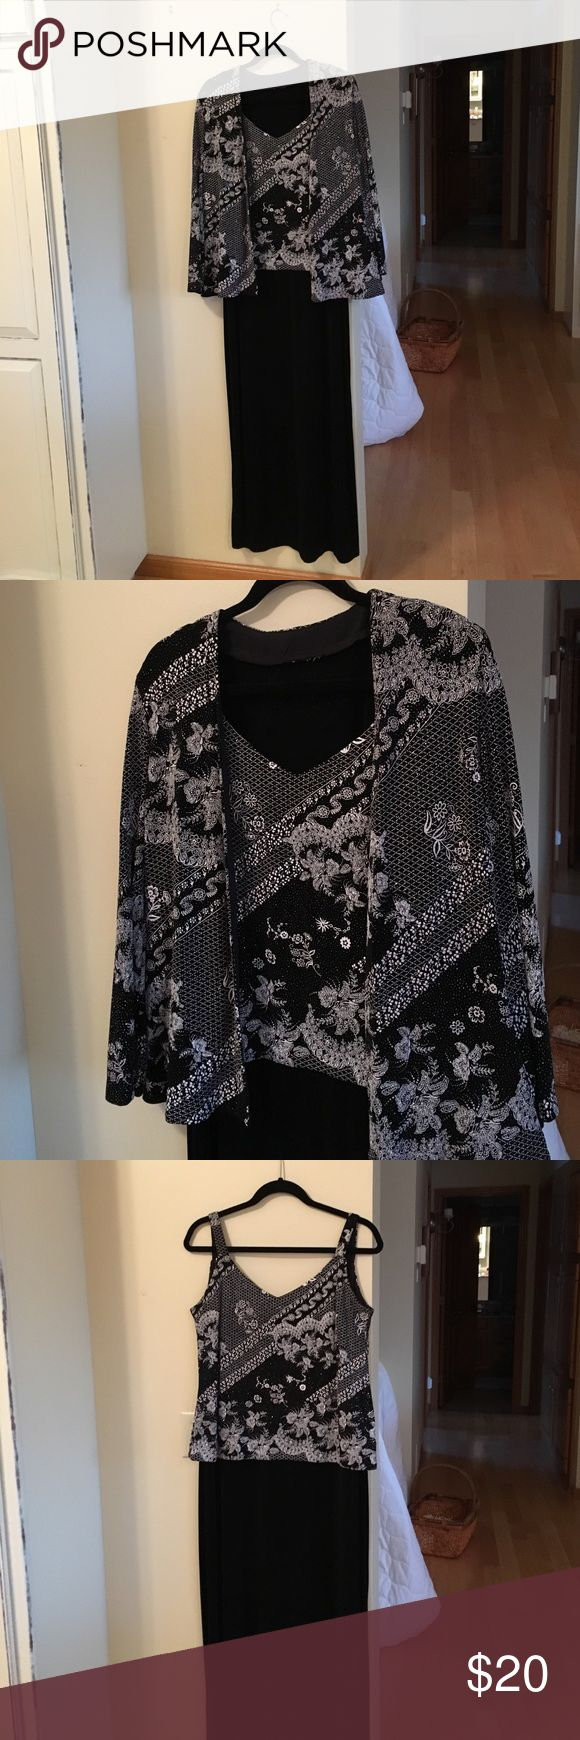 Dressy long black jacket dress🌹 NWOT NWOT. Just gorgeous dress with sleeveless overlay top embellished with white floral pattern and subtle sparkles. Jacket has same white pattern and sparkle. Perfect for any formal occasion or cruise wear. 90% acetate/10% spandex. R&M Richards Dresses Maxi